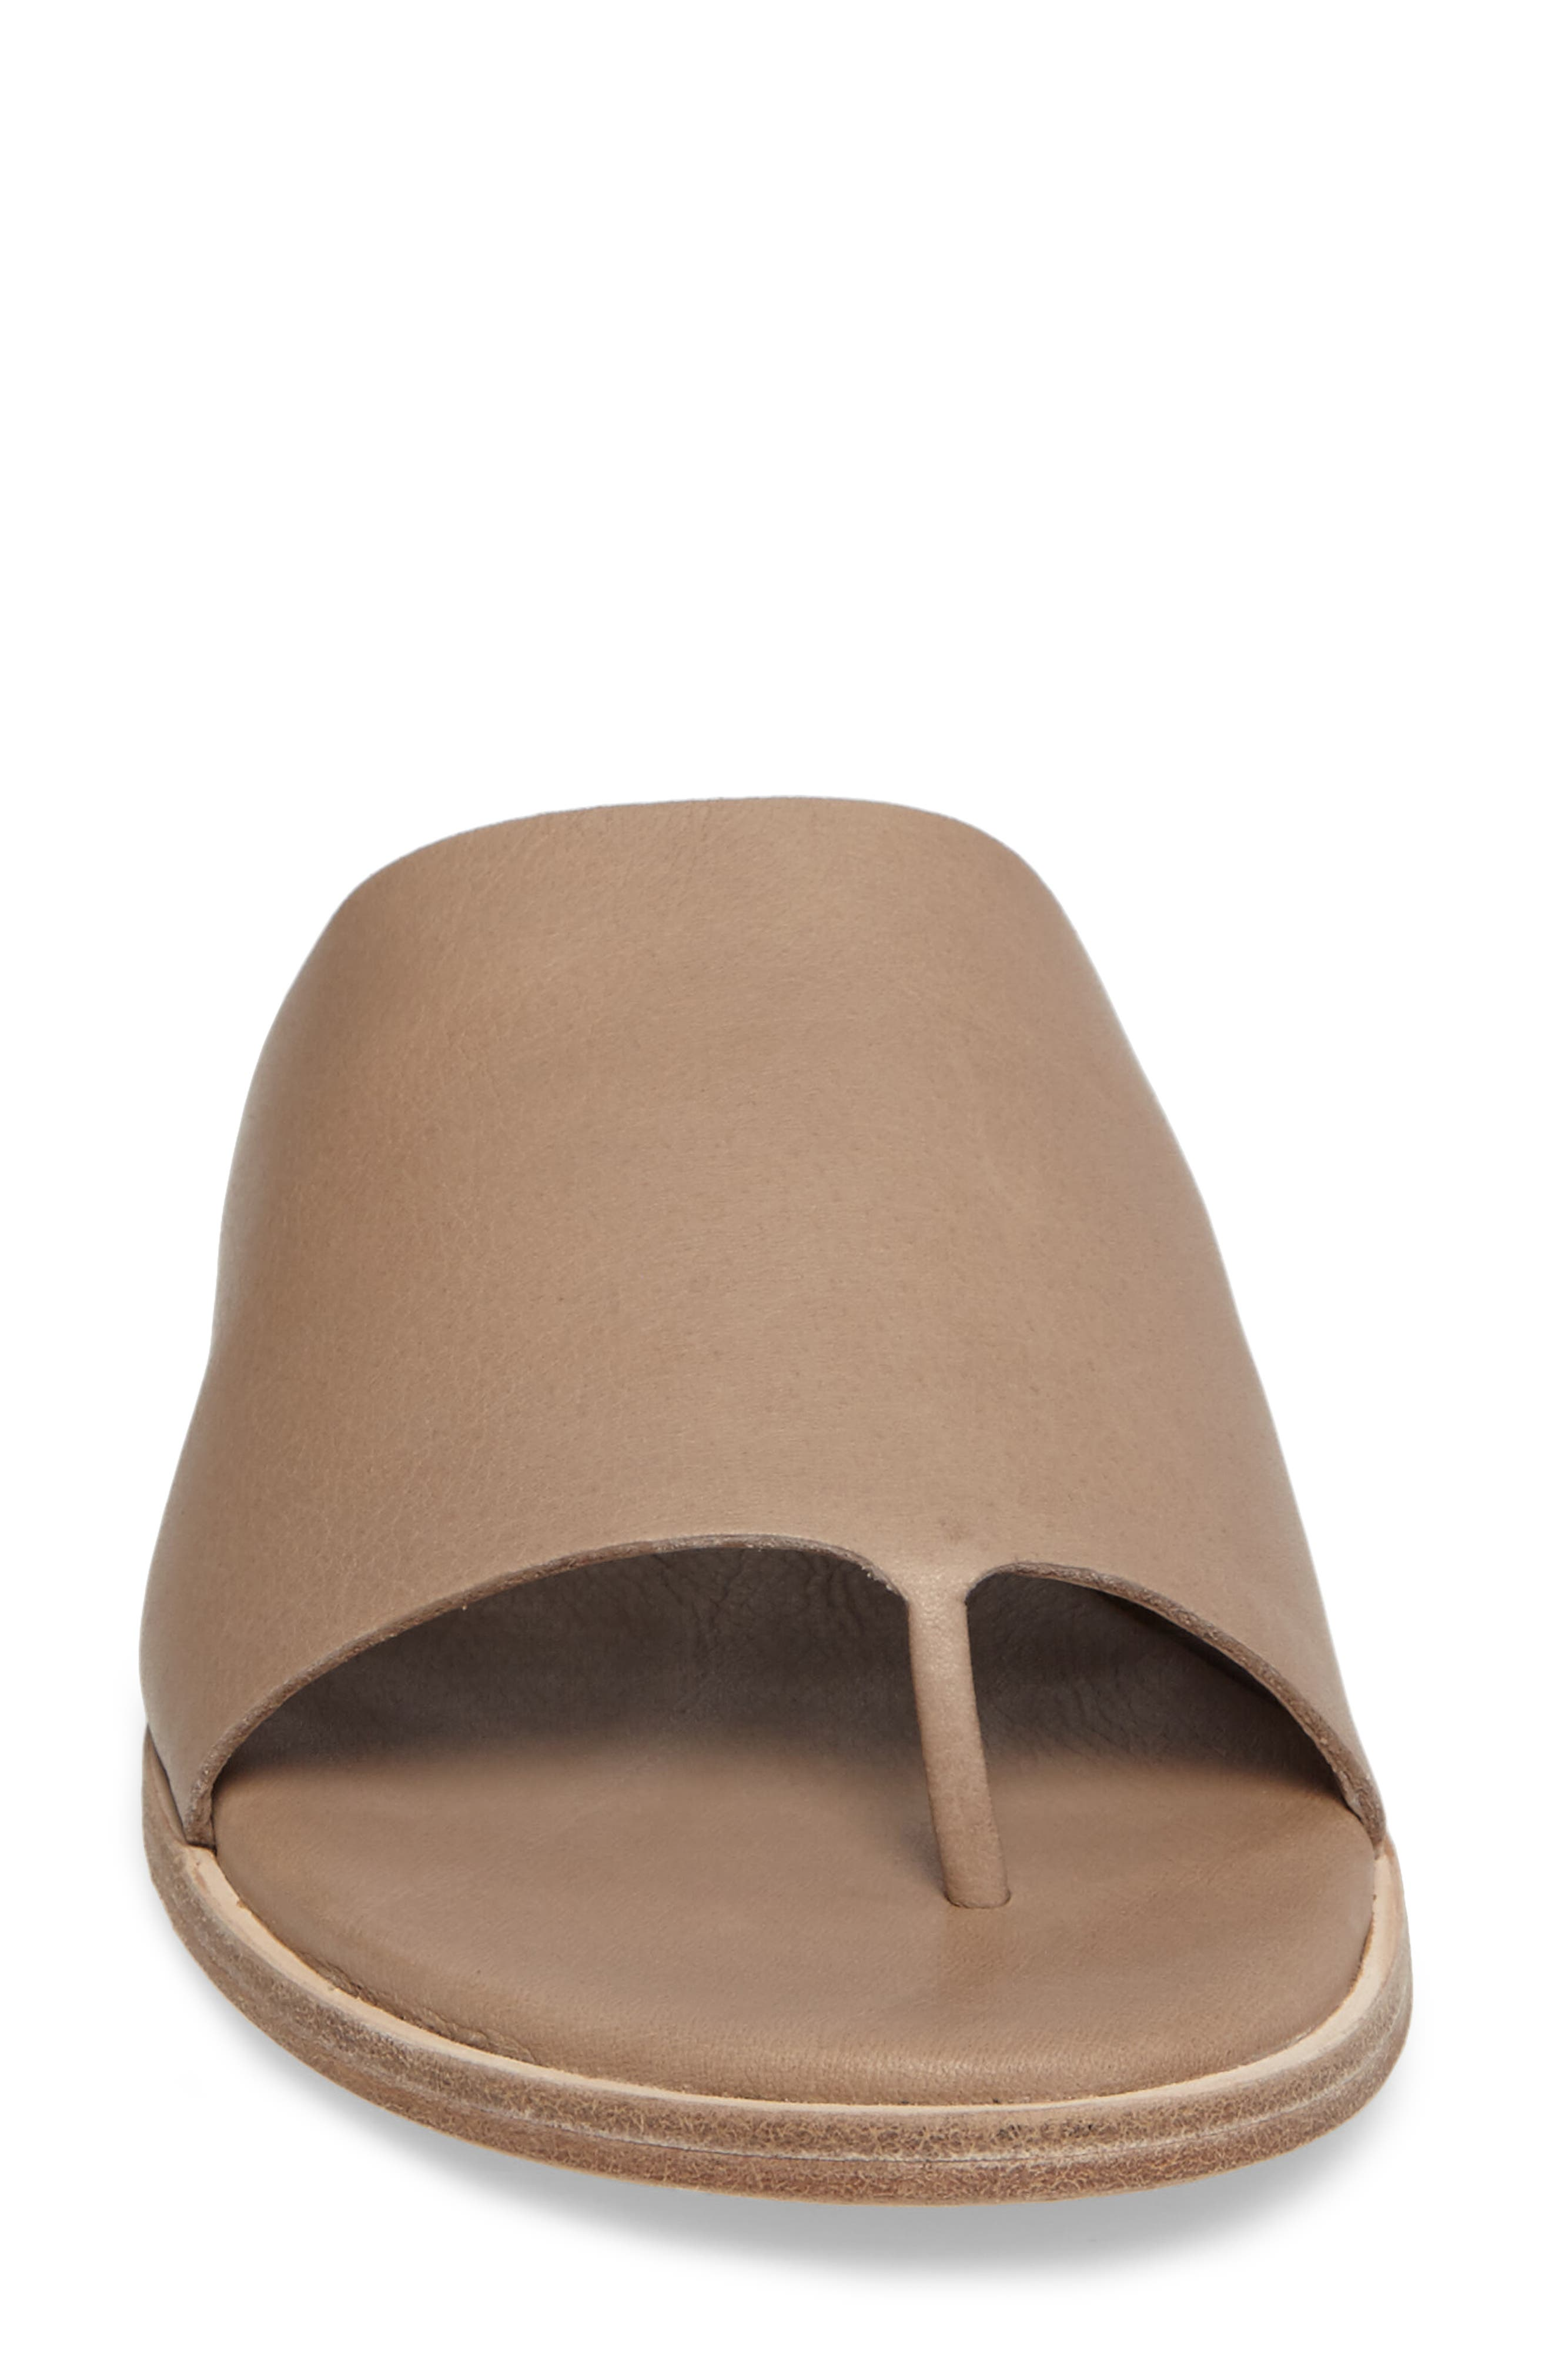 Alternate Image 4  - Eileen Fisher 'Mere' Thong Sandal (Women)